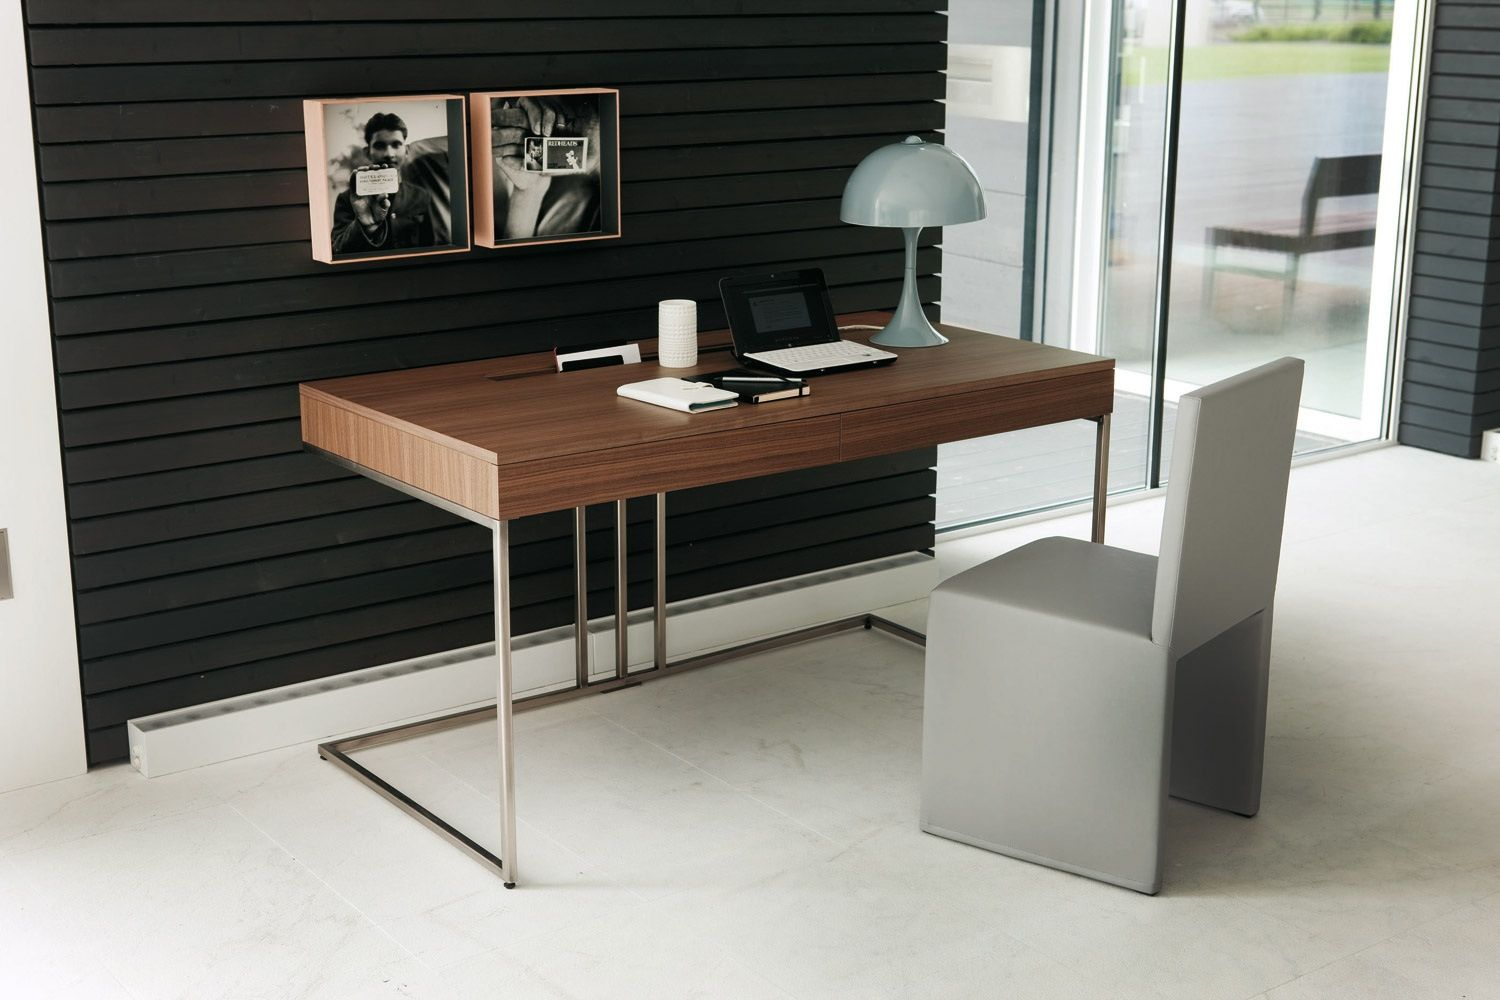 Contemporary Office Desks For Home Custom Home Office Furniture Check More At Http Www Drjamesghoodblog Com Contemporary Office D Interior Mebel Meja Kerja